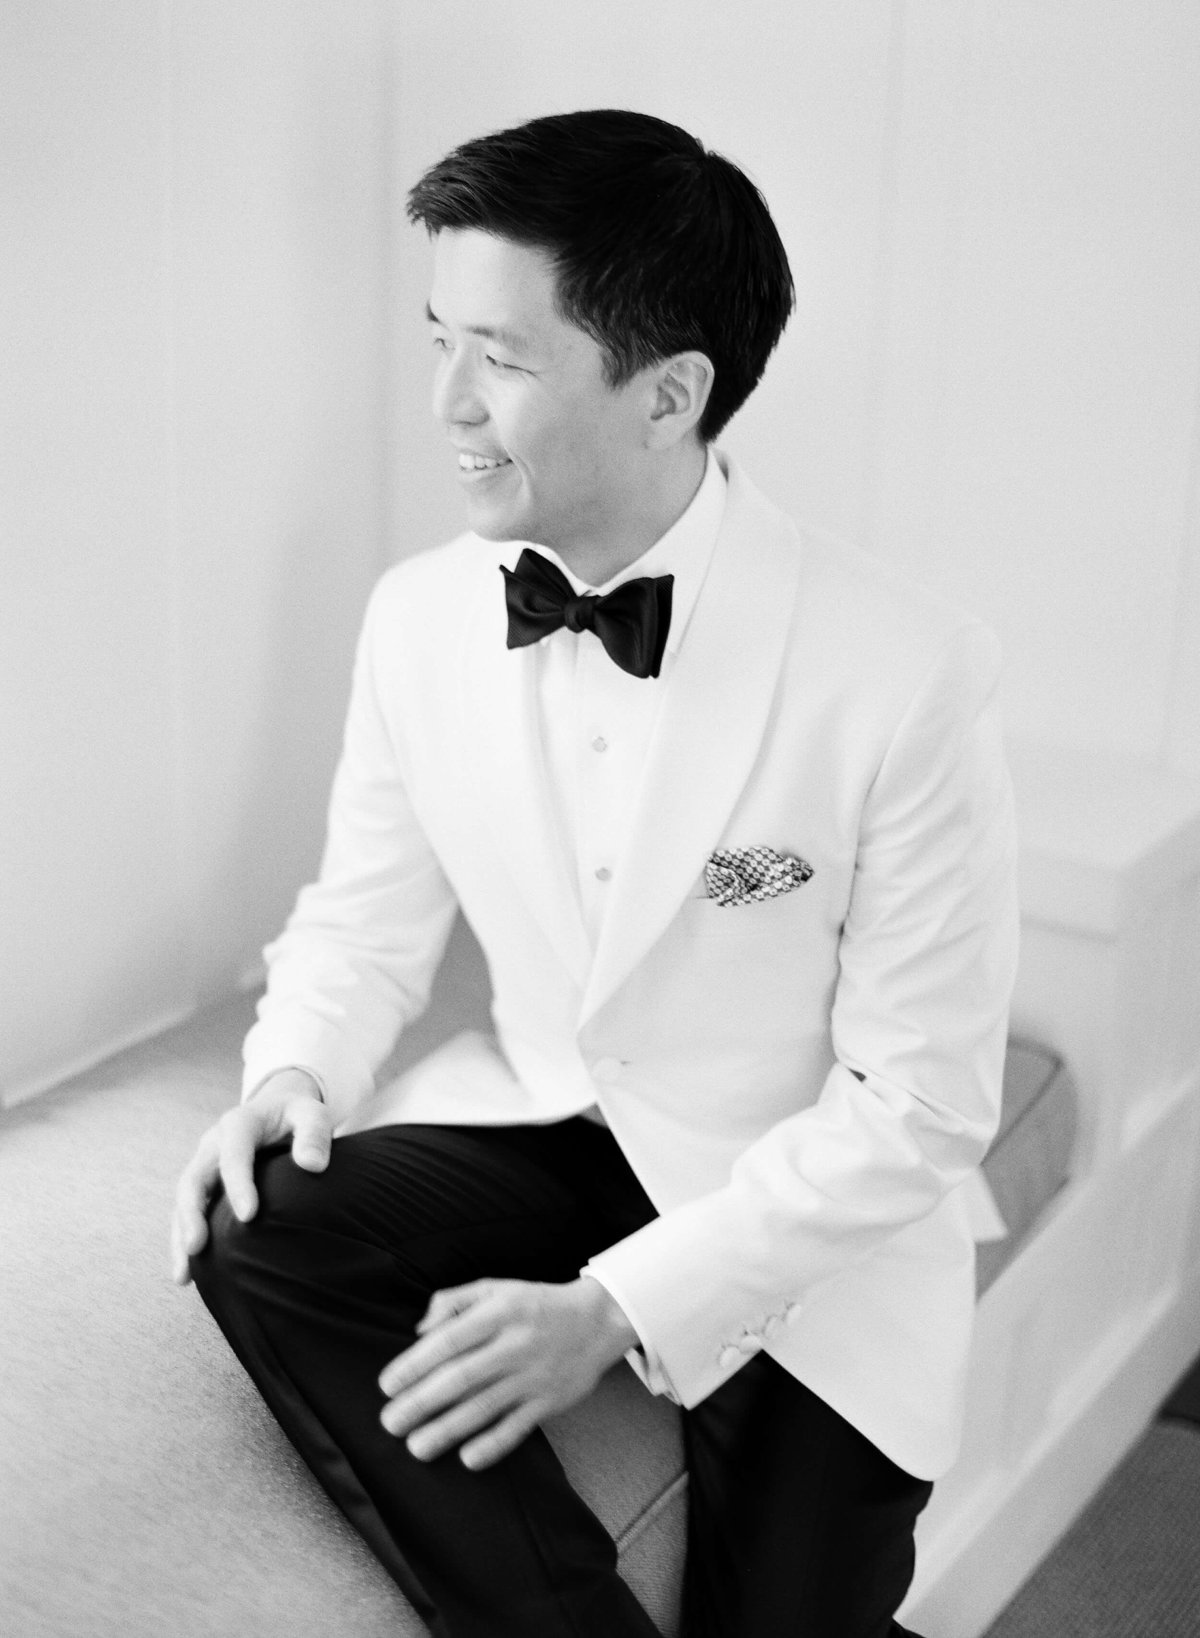 20-KTMerry-wedding-photography-white-tuxedo-TomJames